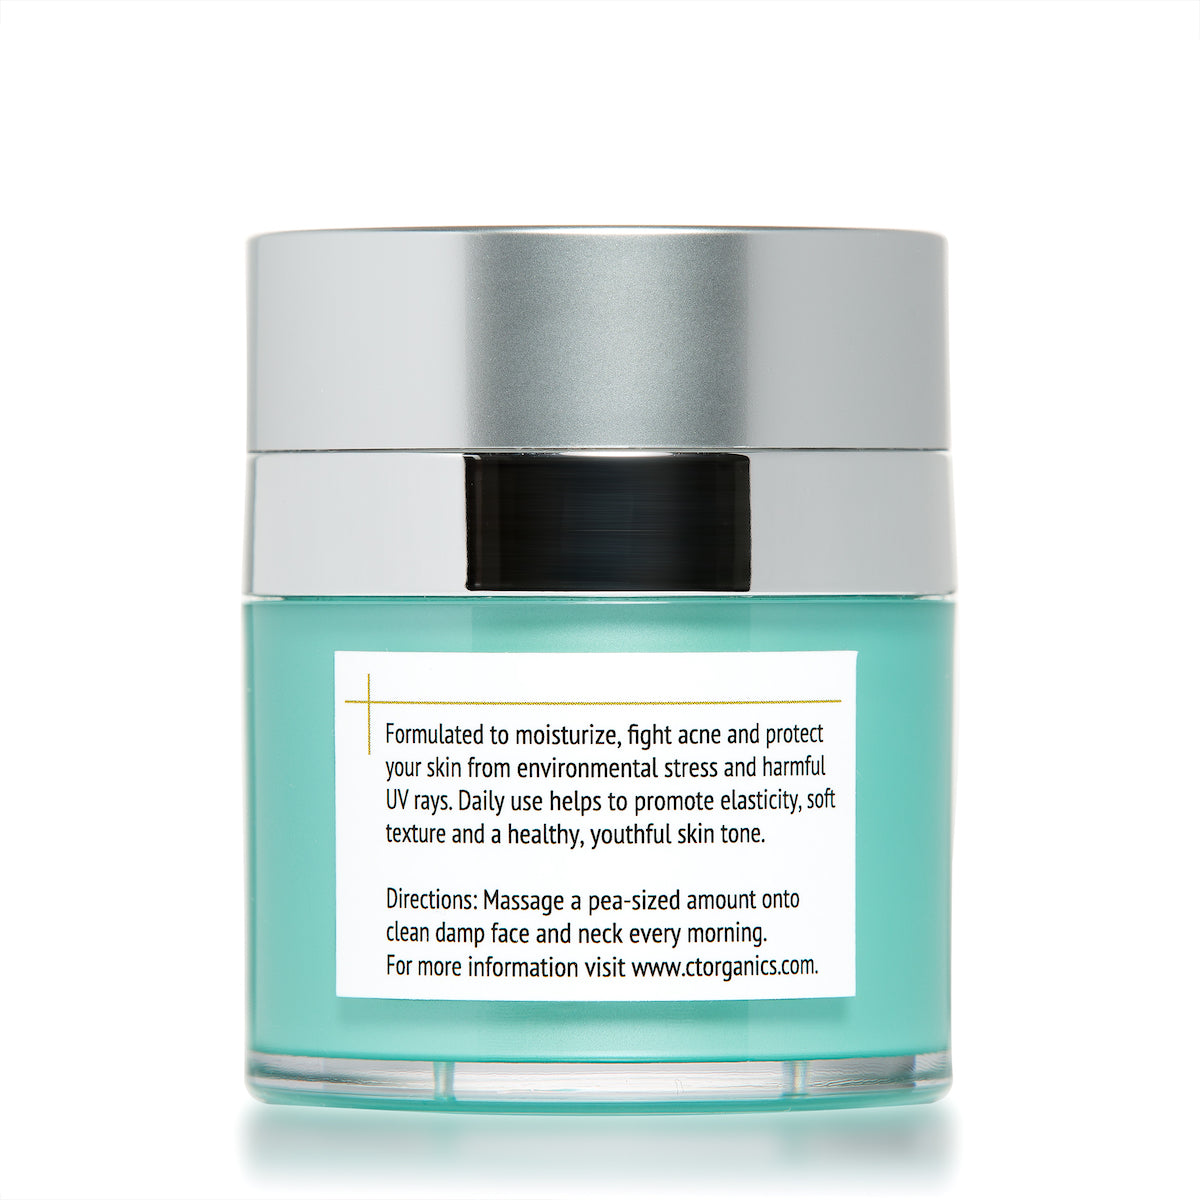 Moisturizing Day Face Cream